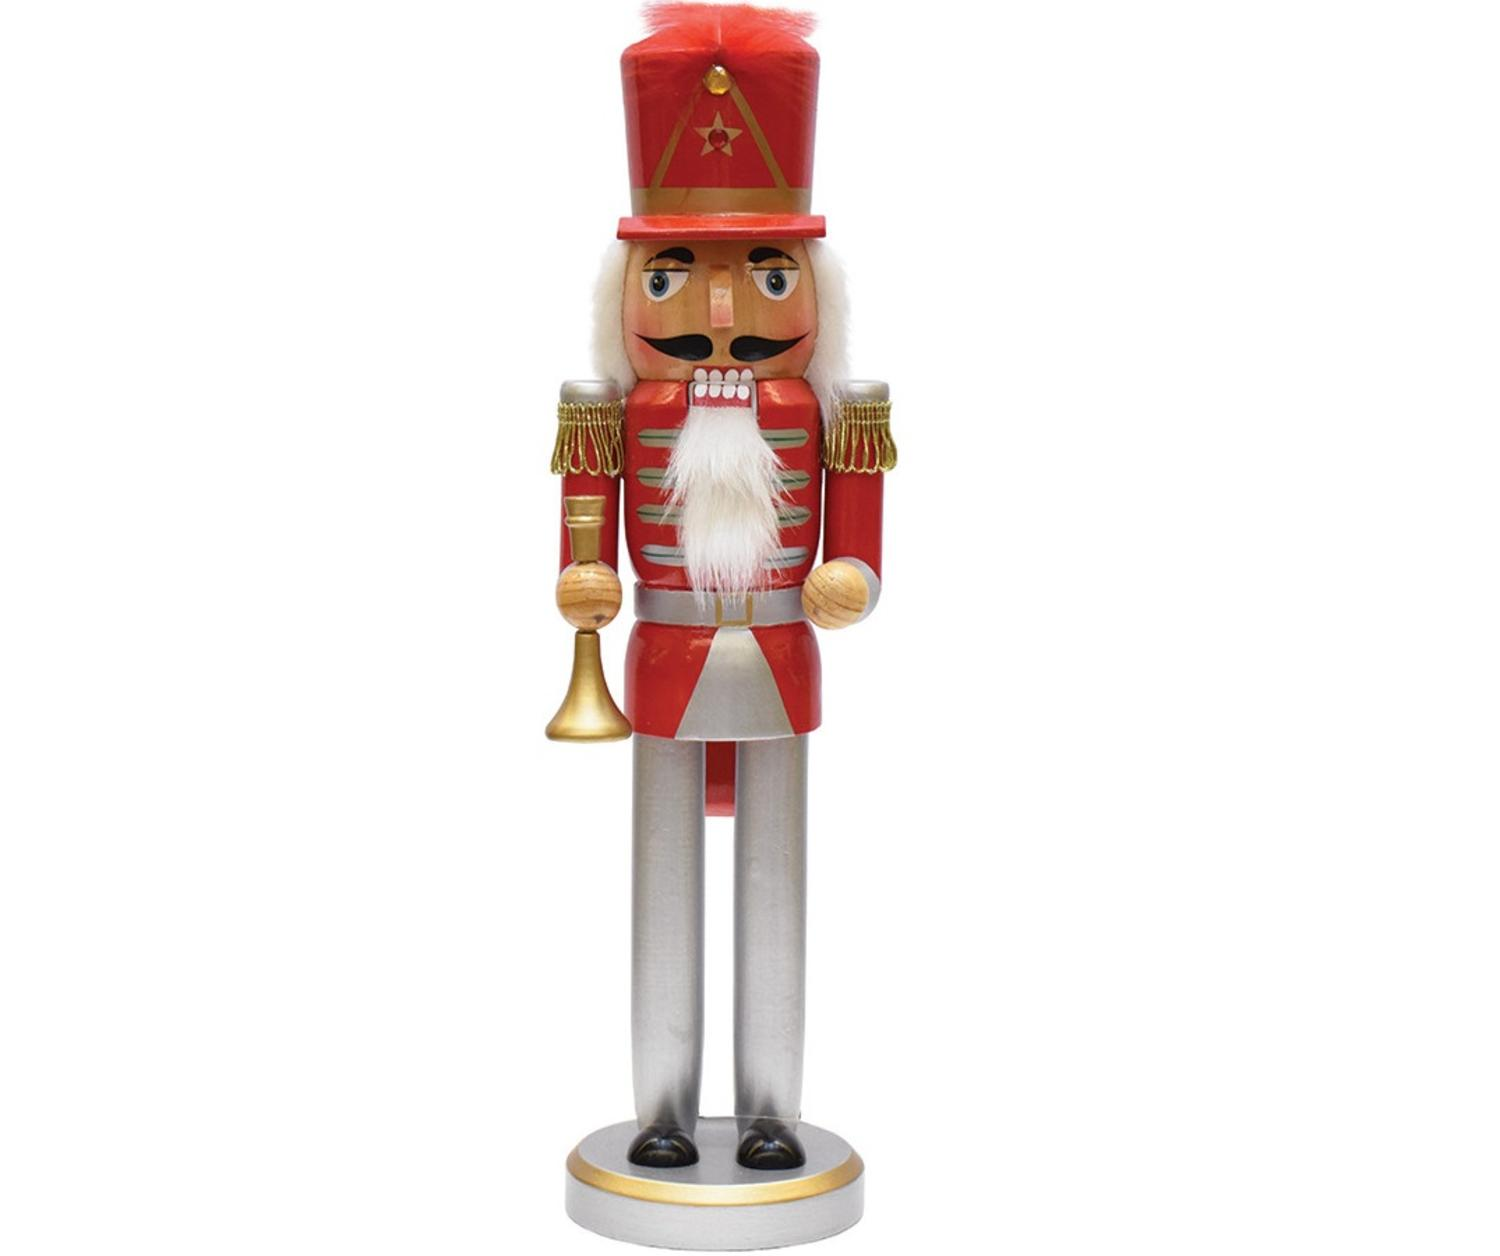 Christmas Nutcracker.14 Red Silver And Gold Wooden Christmas Nutcracker With Horn